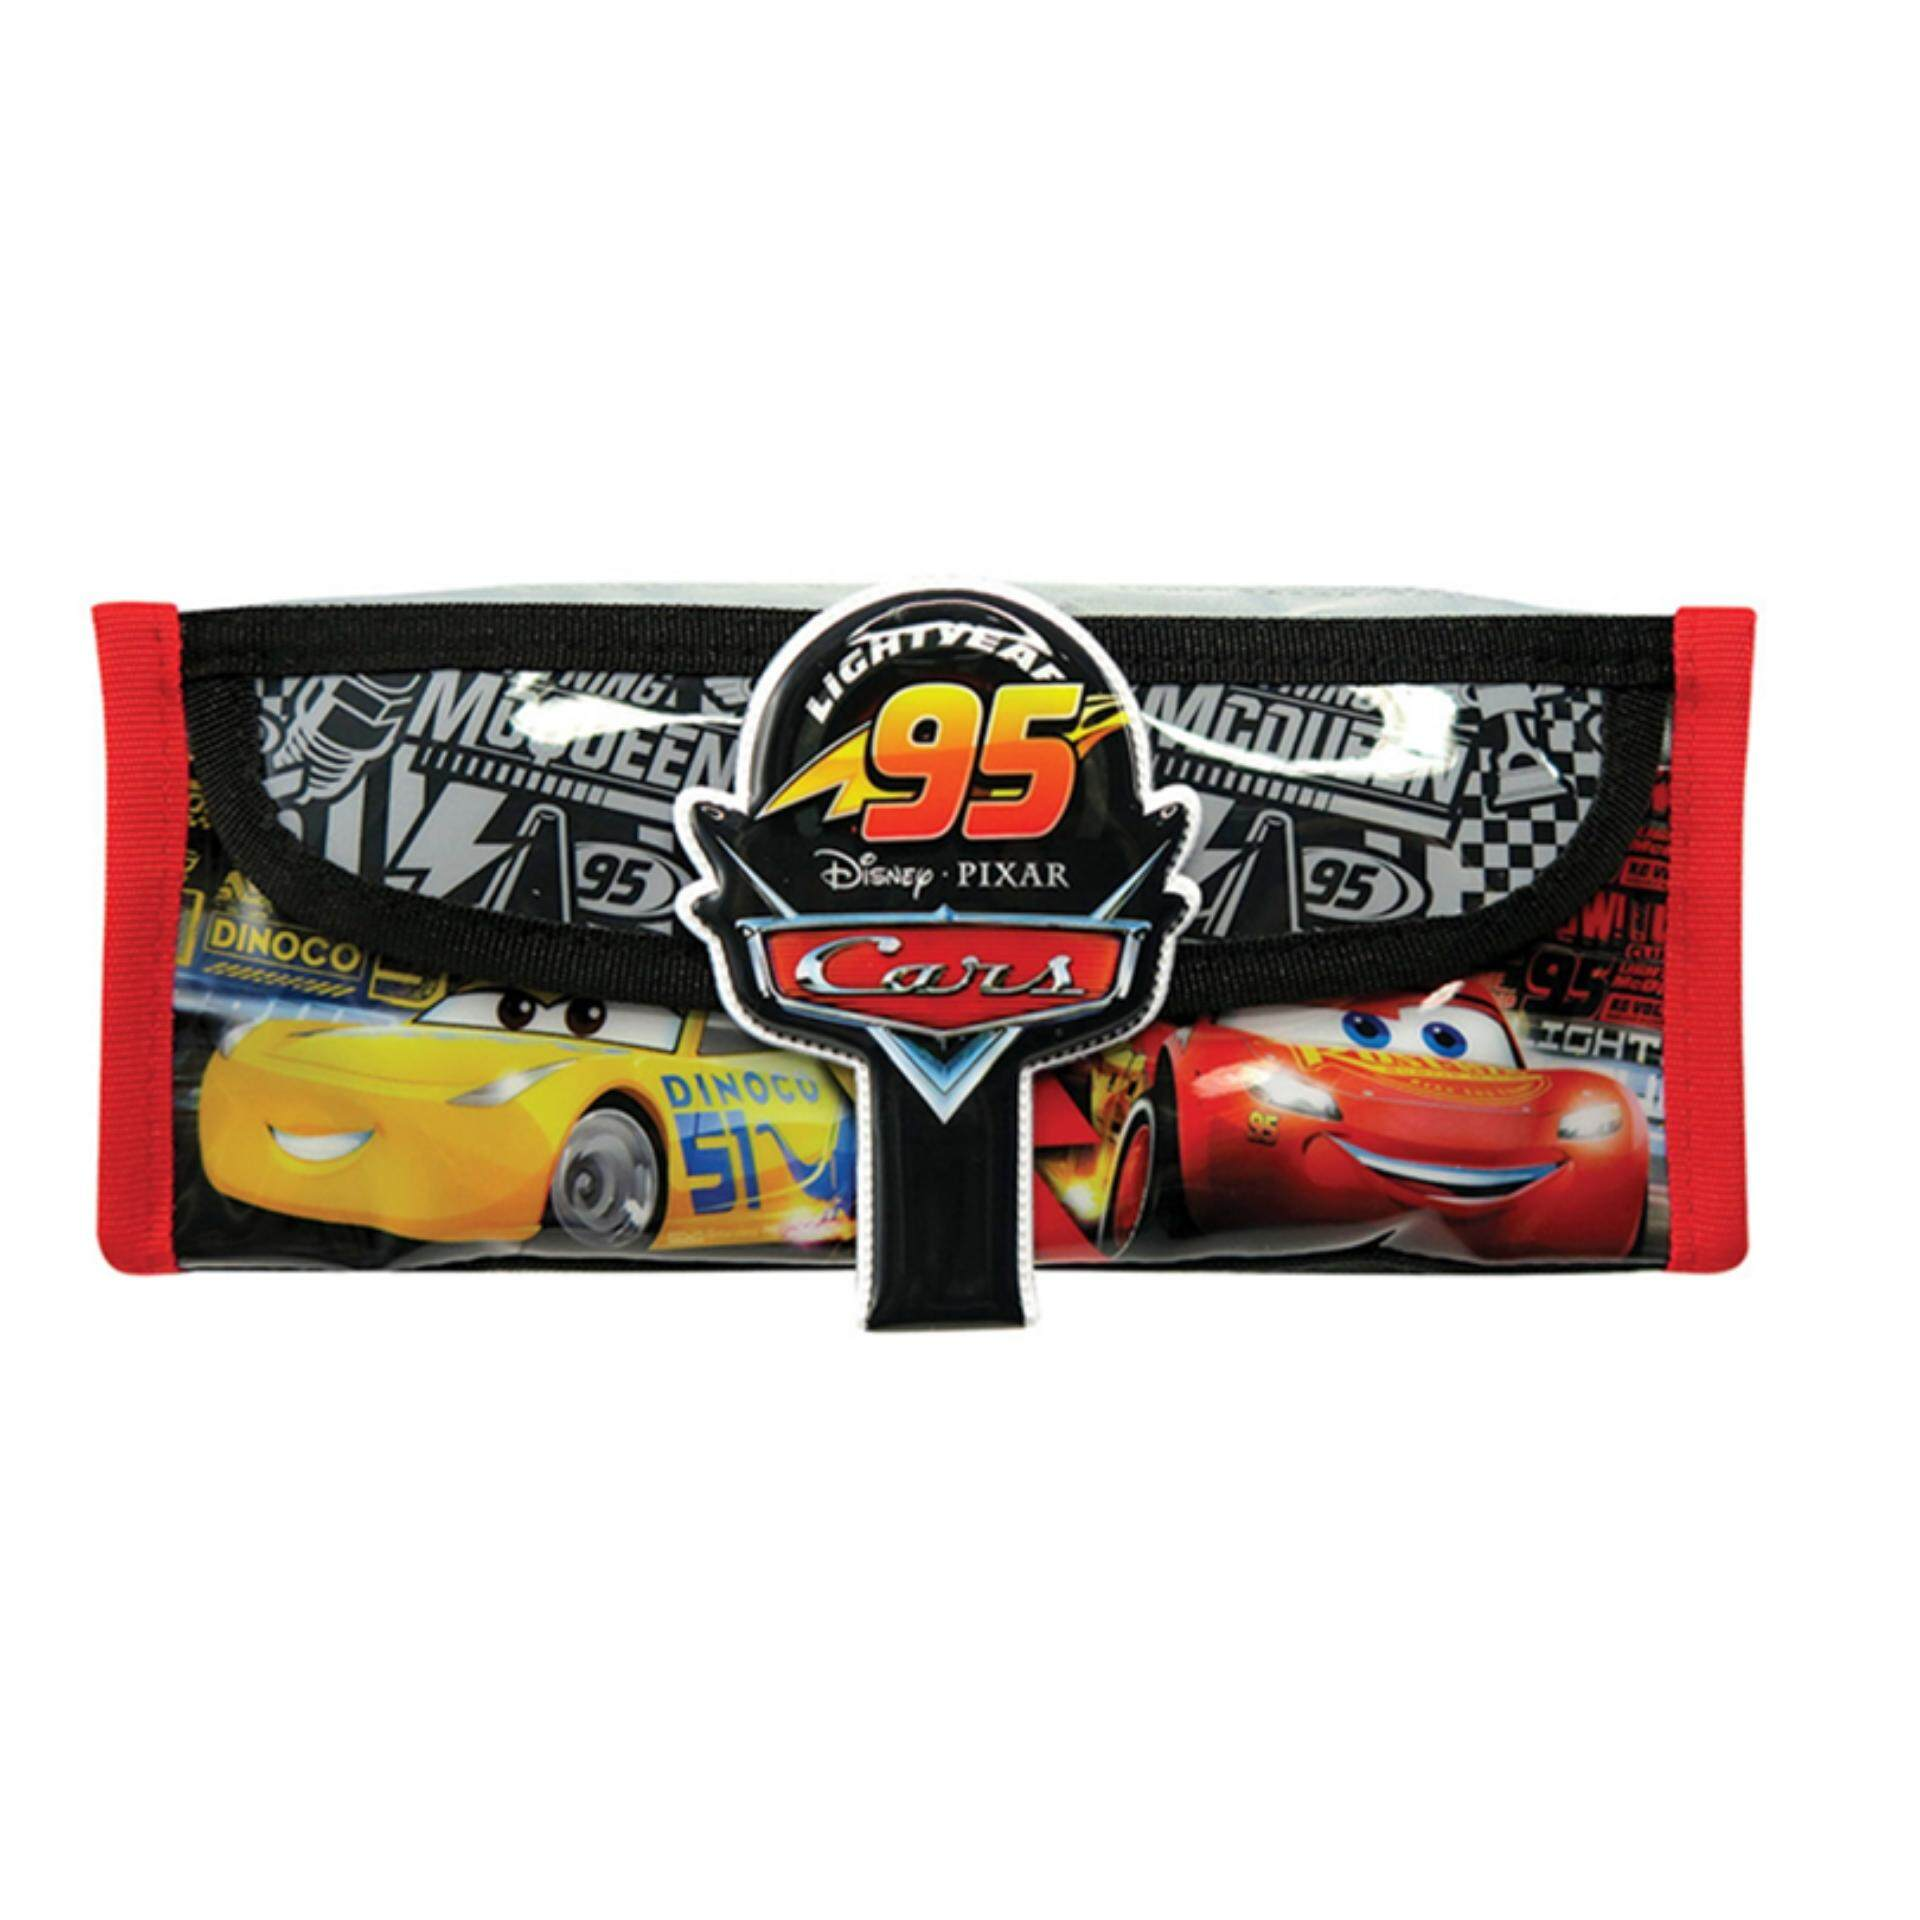 Disney Pixar Cars 3 Square Pencil Bag With Pocket - Black Colour